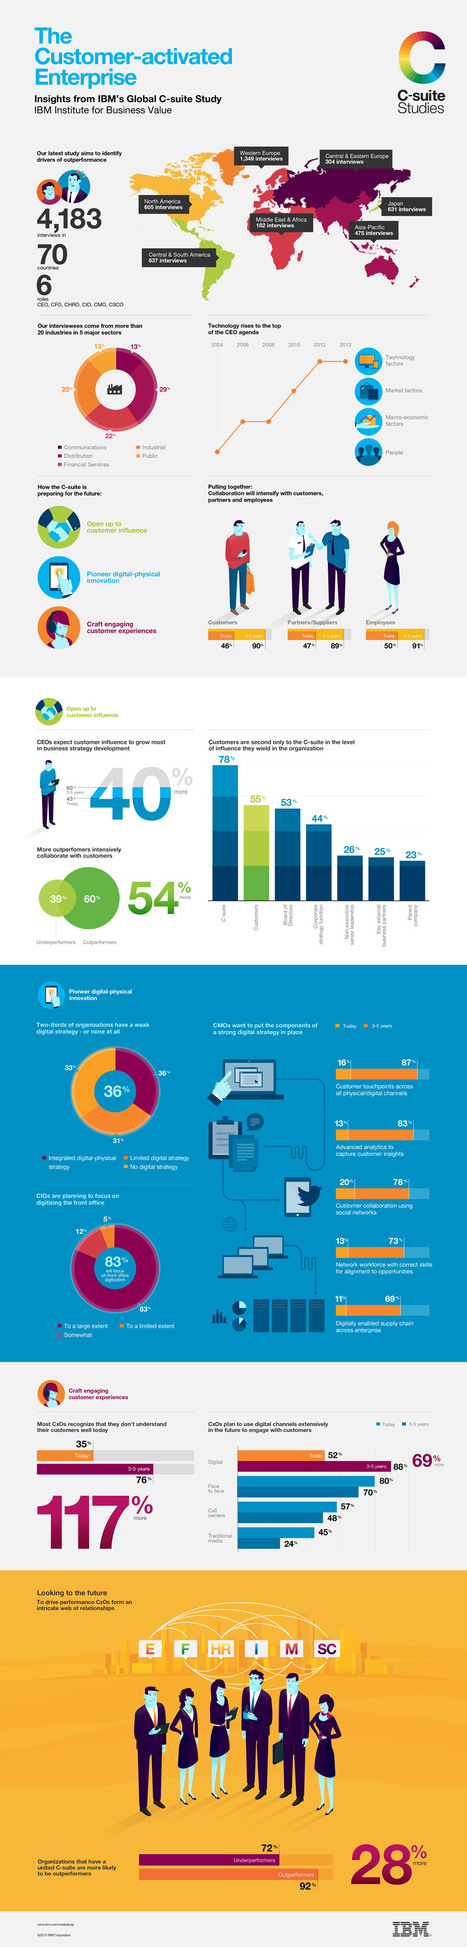 IBM's infographic The Customer-activated Enterpris Insights from the Global C-suite Study | SteveB's Social Learning Scoop | Scoop.it